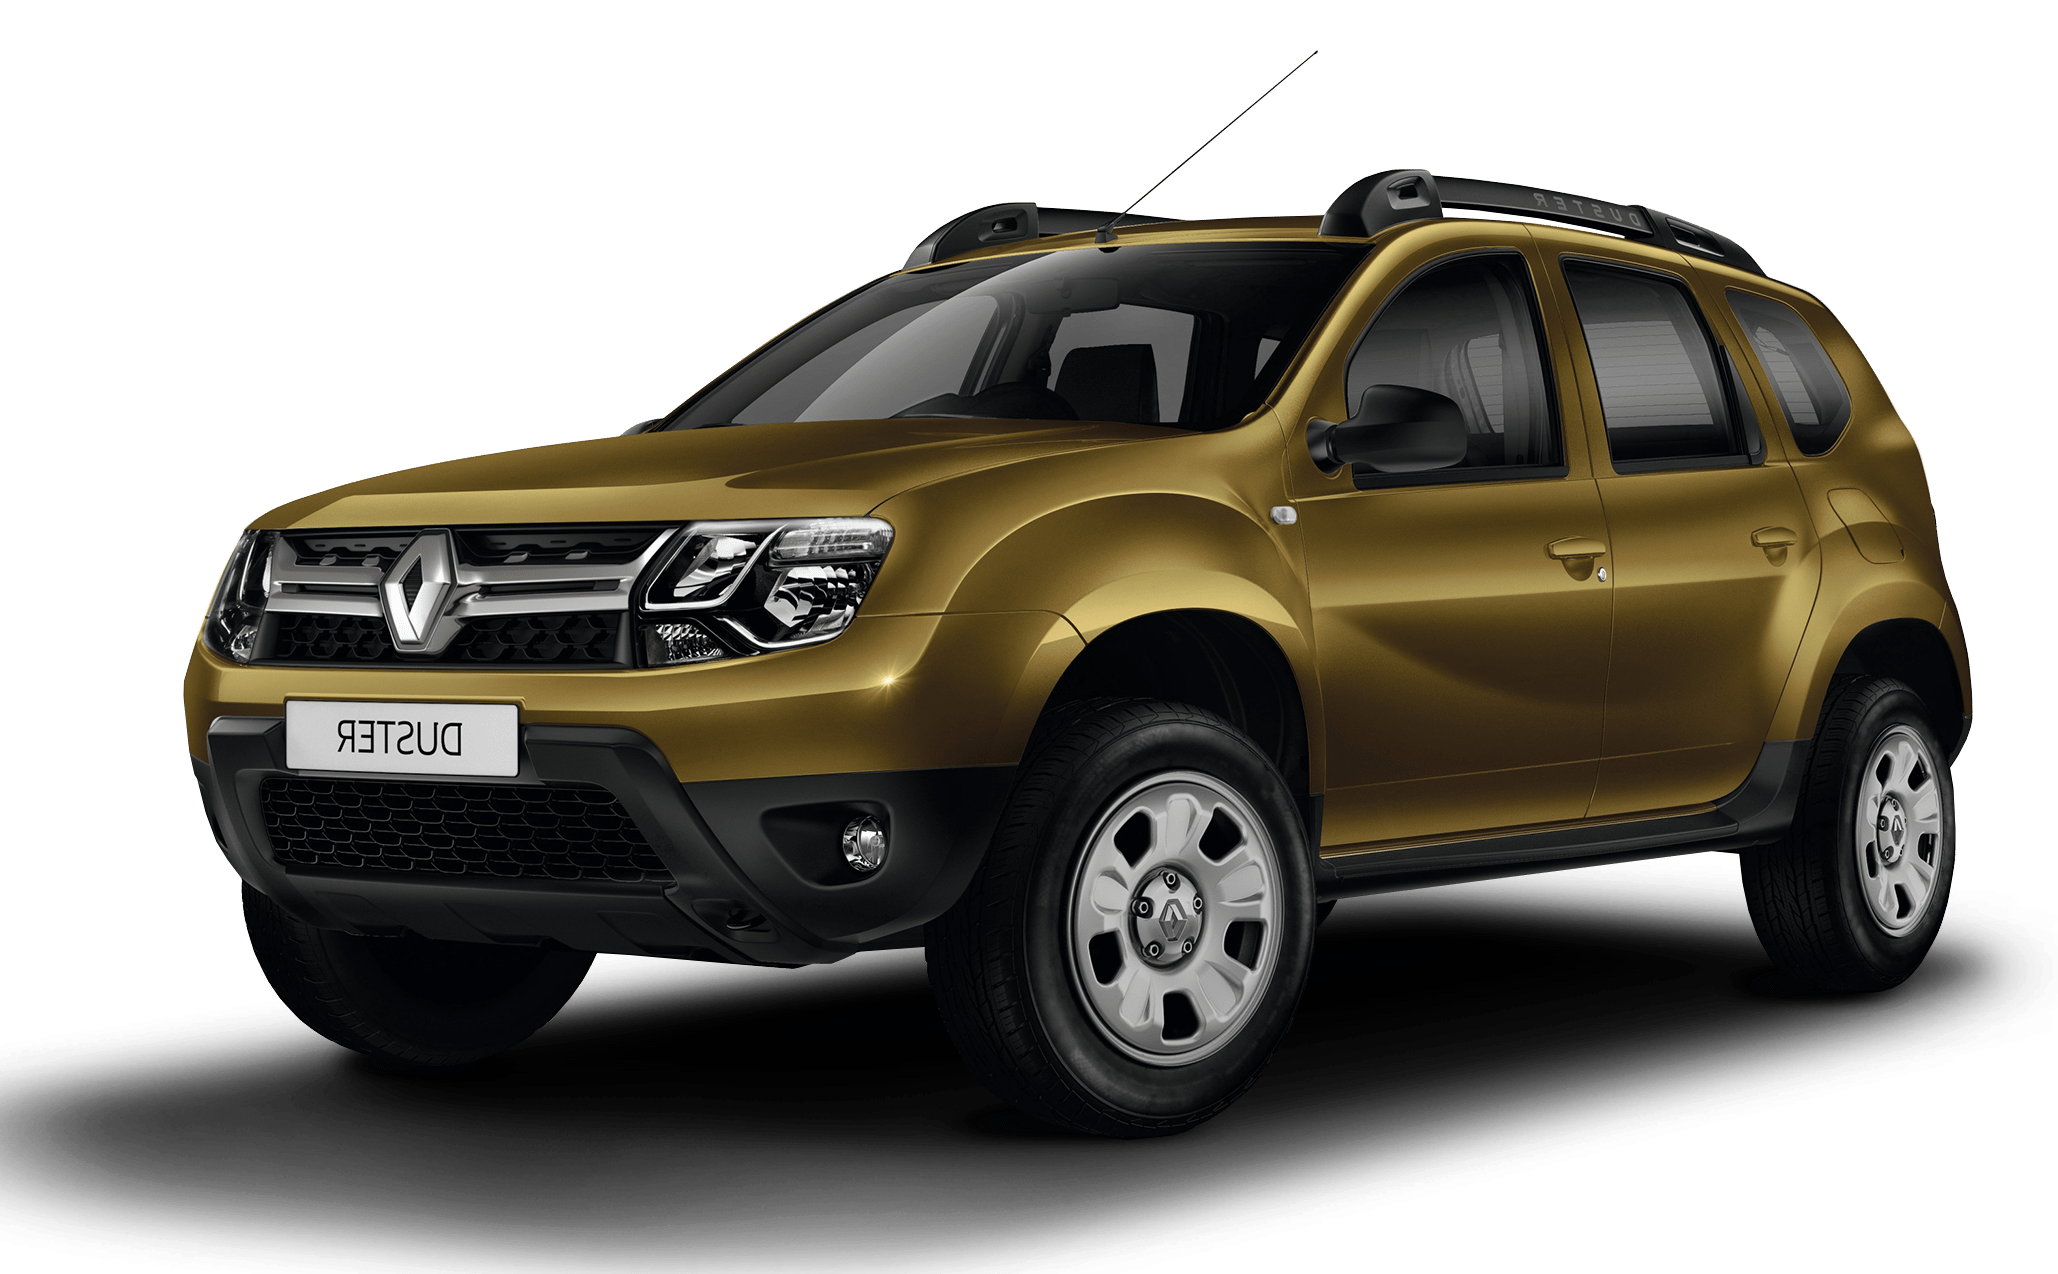 2018 renault duster se reviews 2018 renault duster car. Black Bedroom Furniture Sets. Home Design Ideas